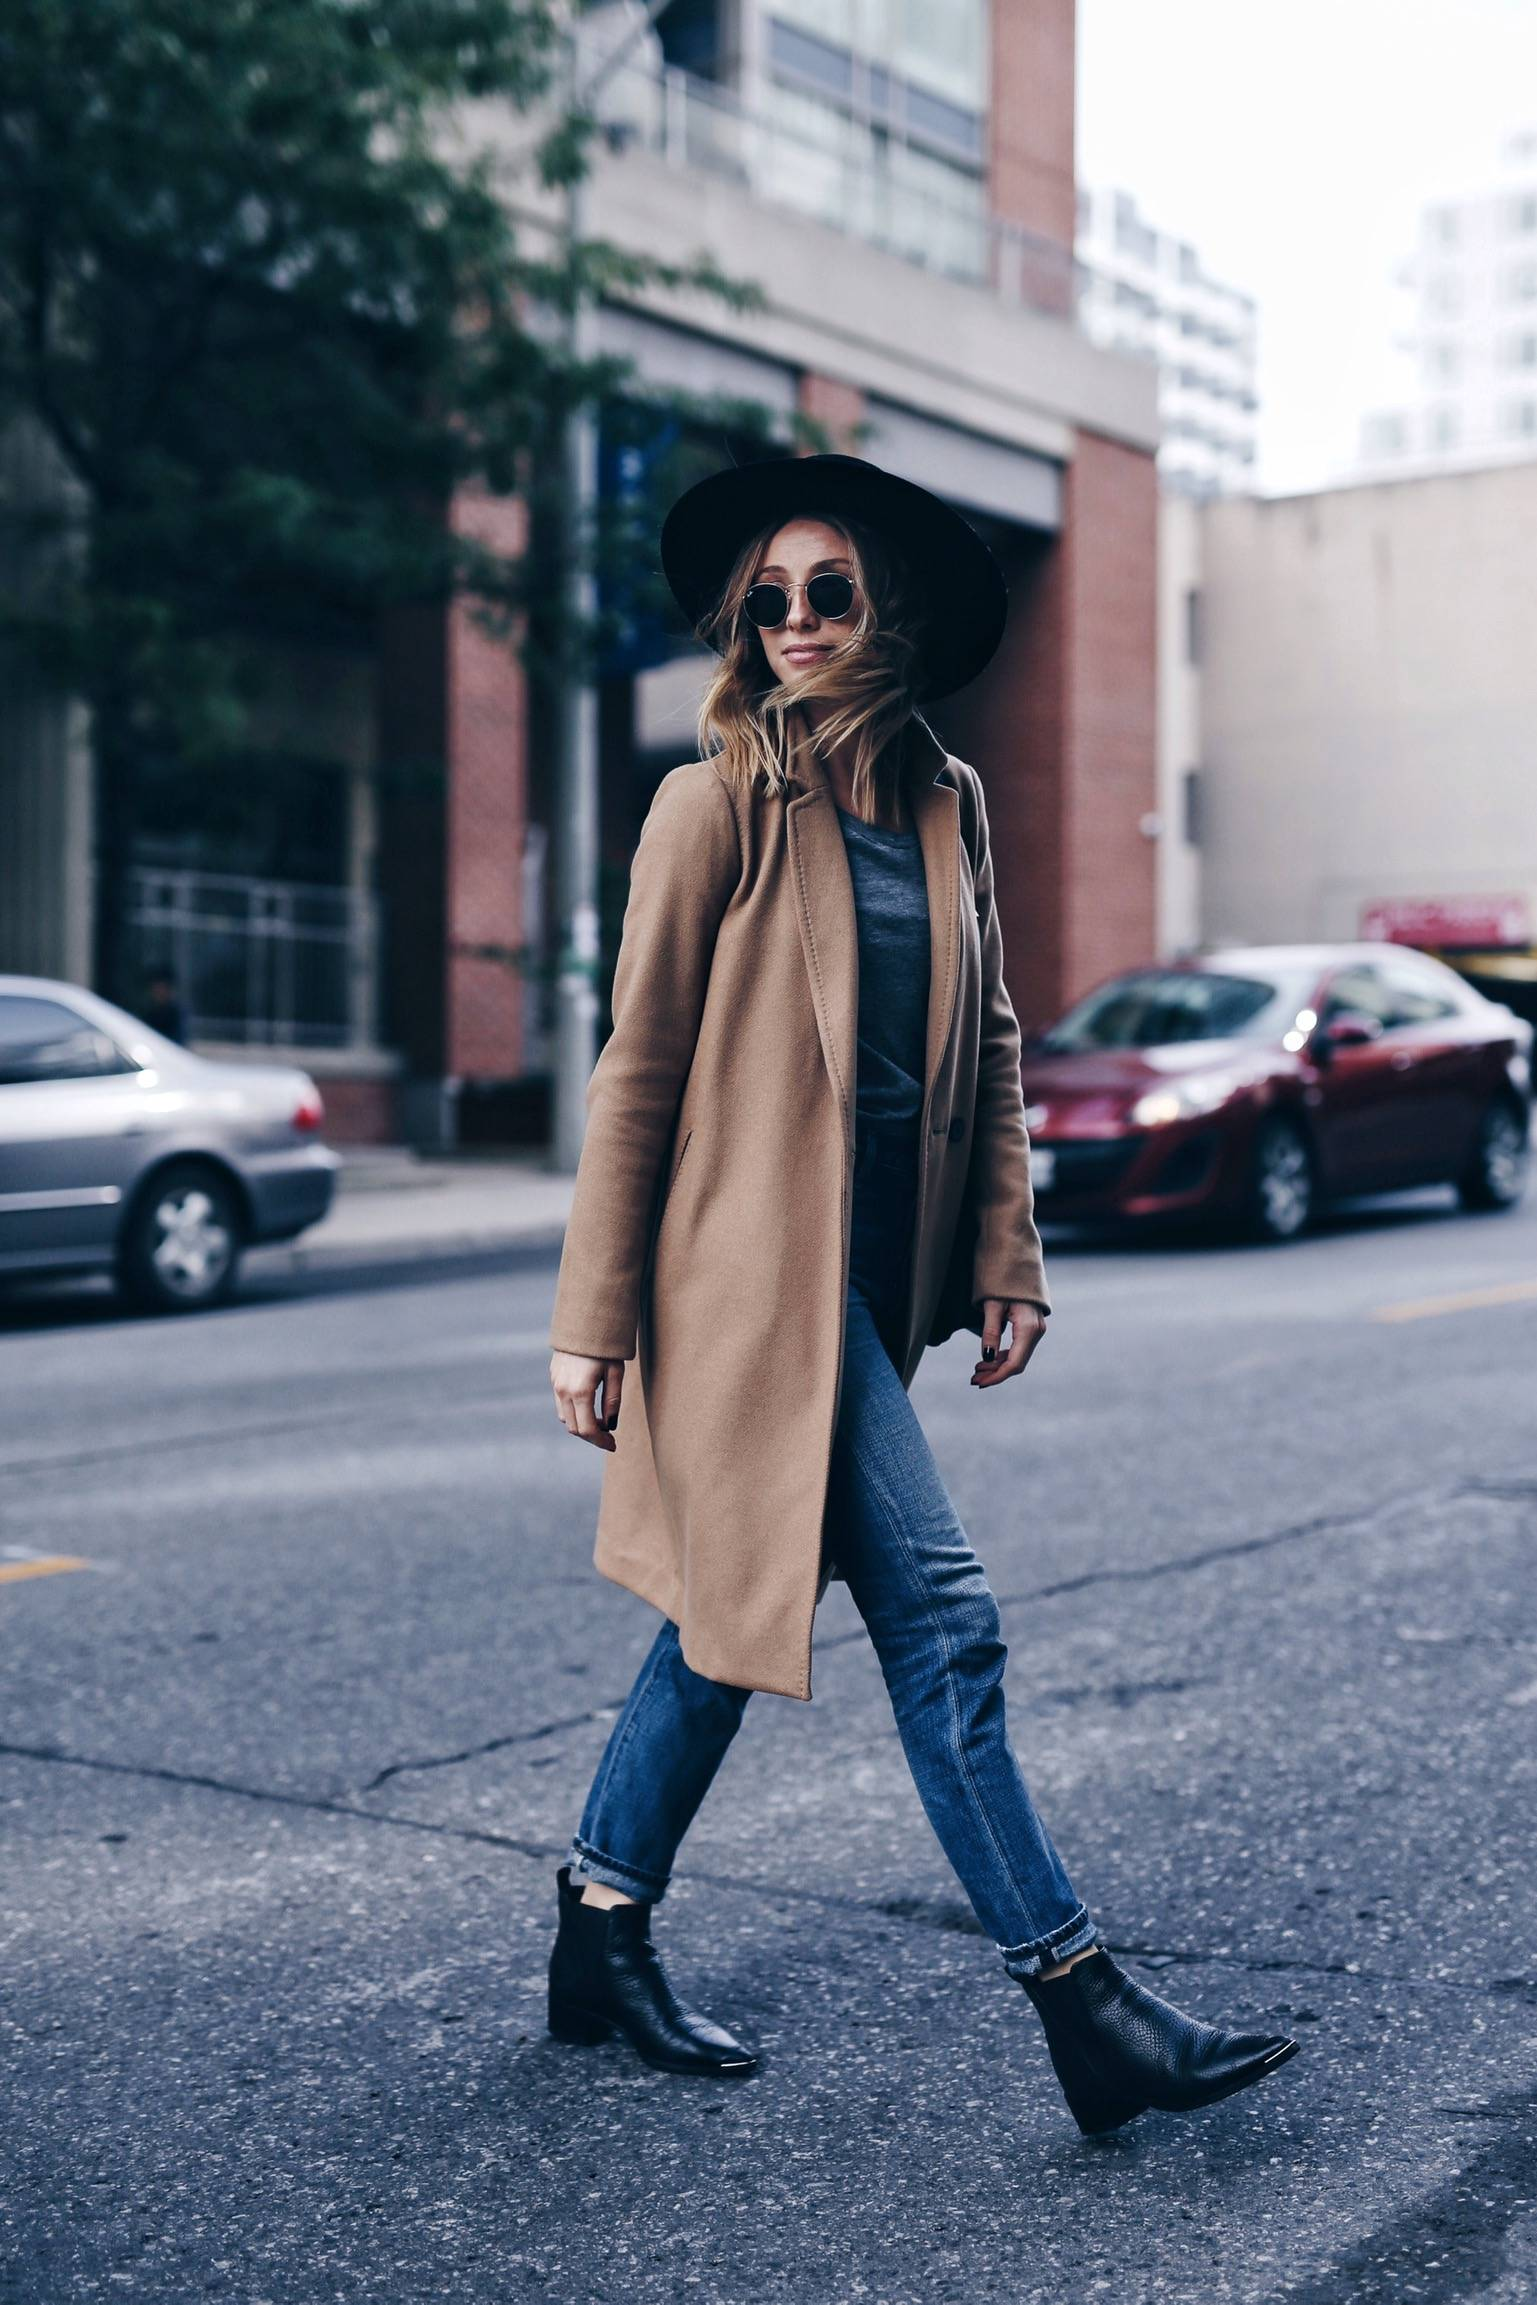 camel coat, chic and effortless street style